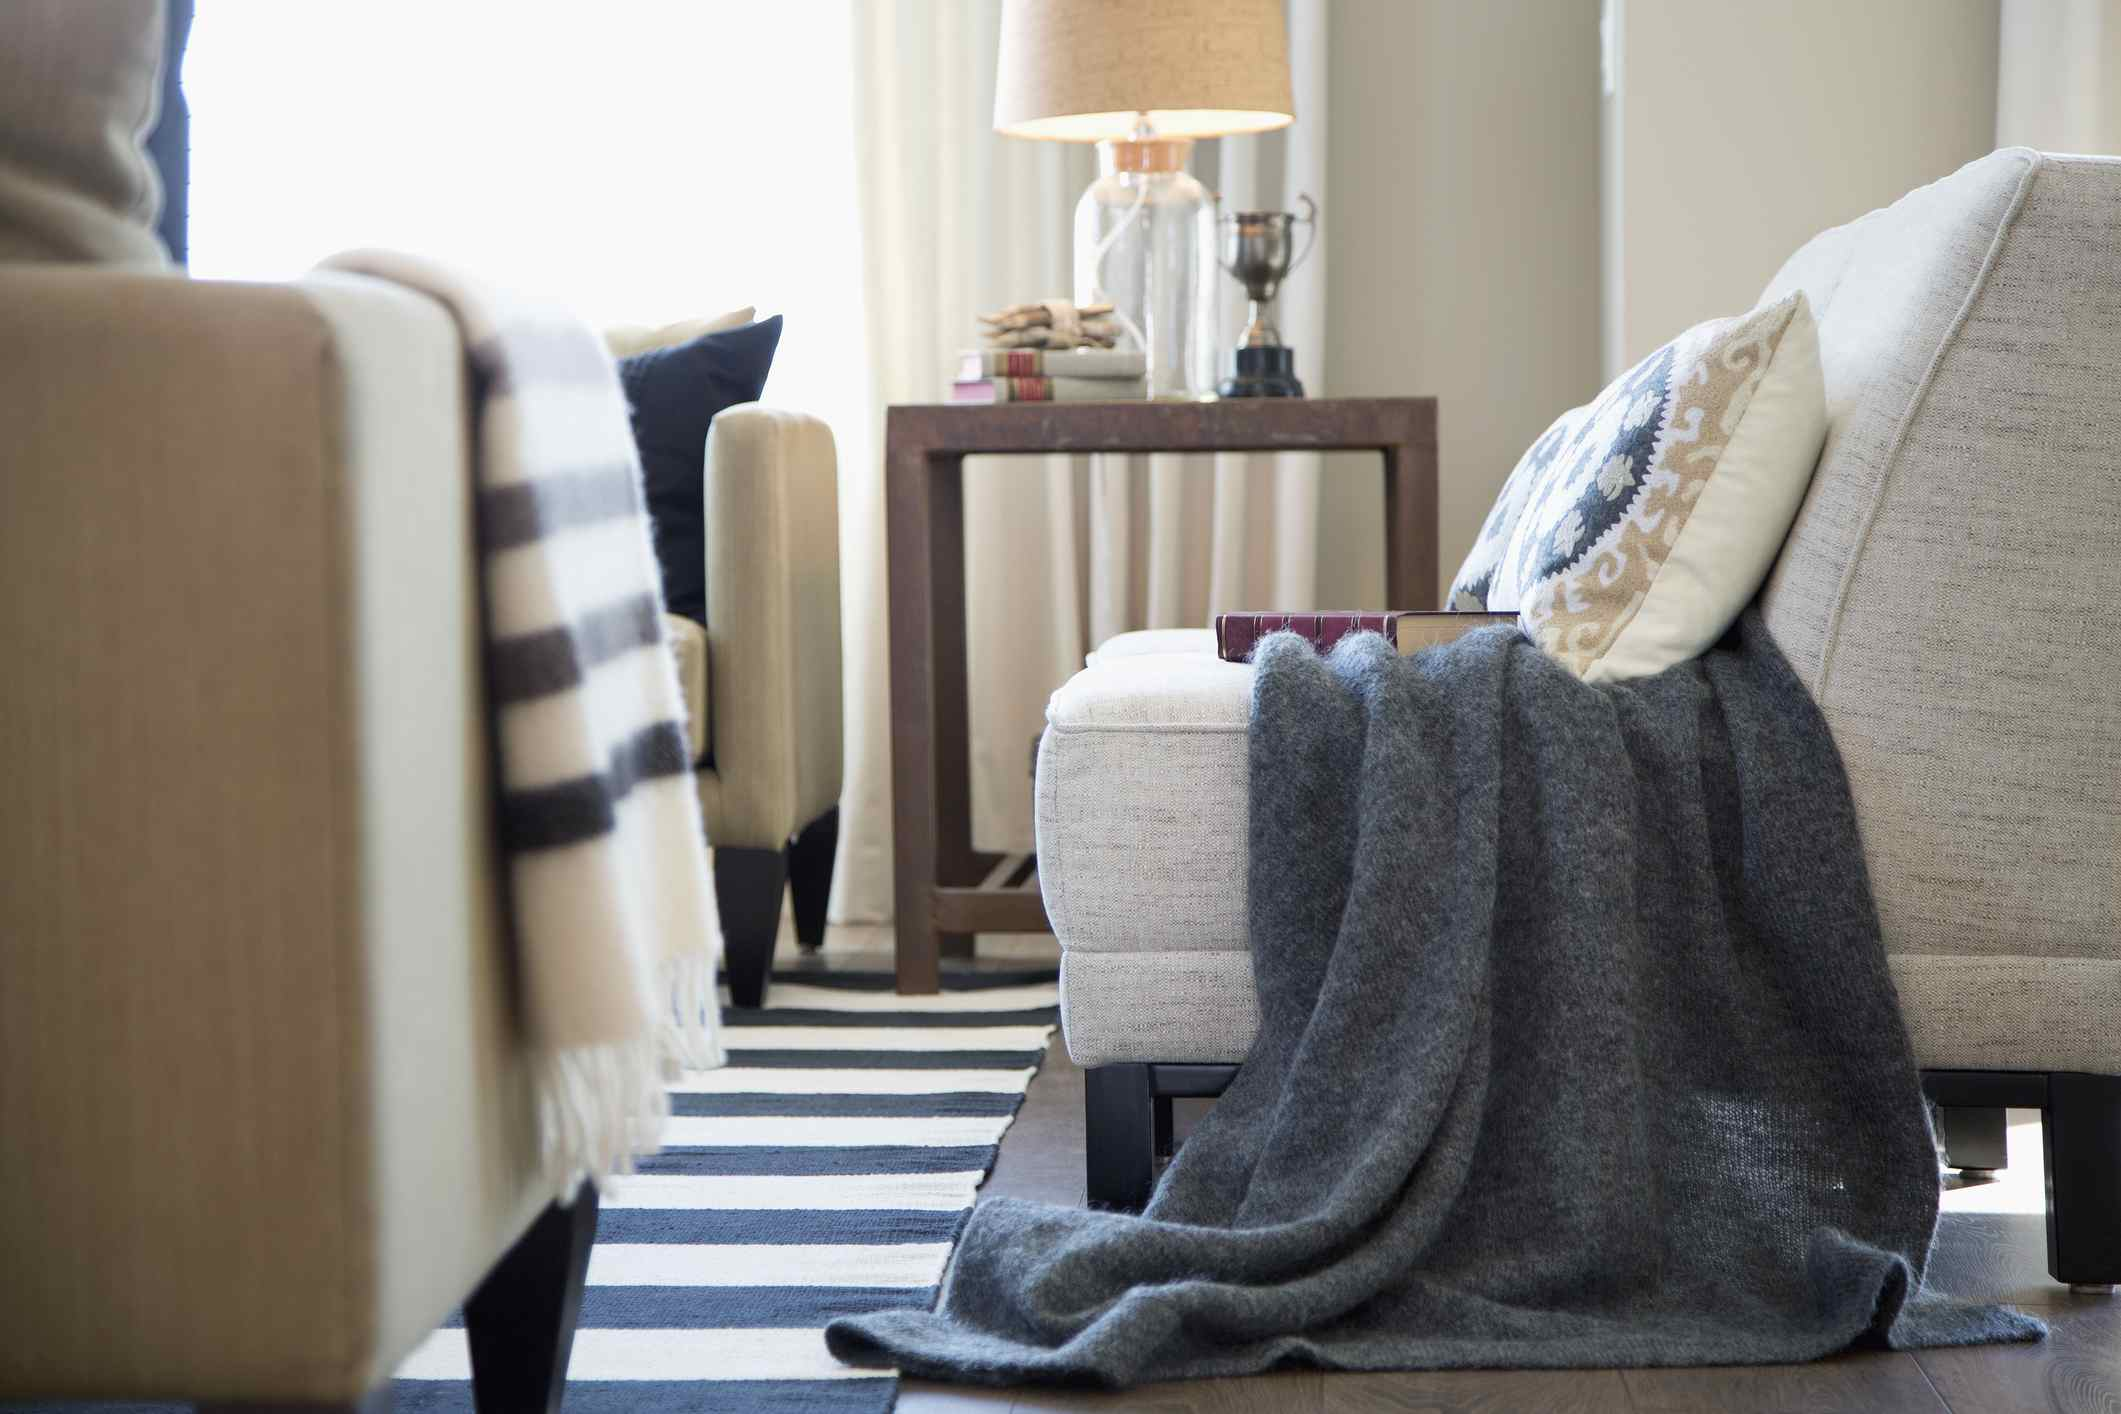 living room with throws on the furniture